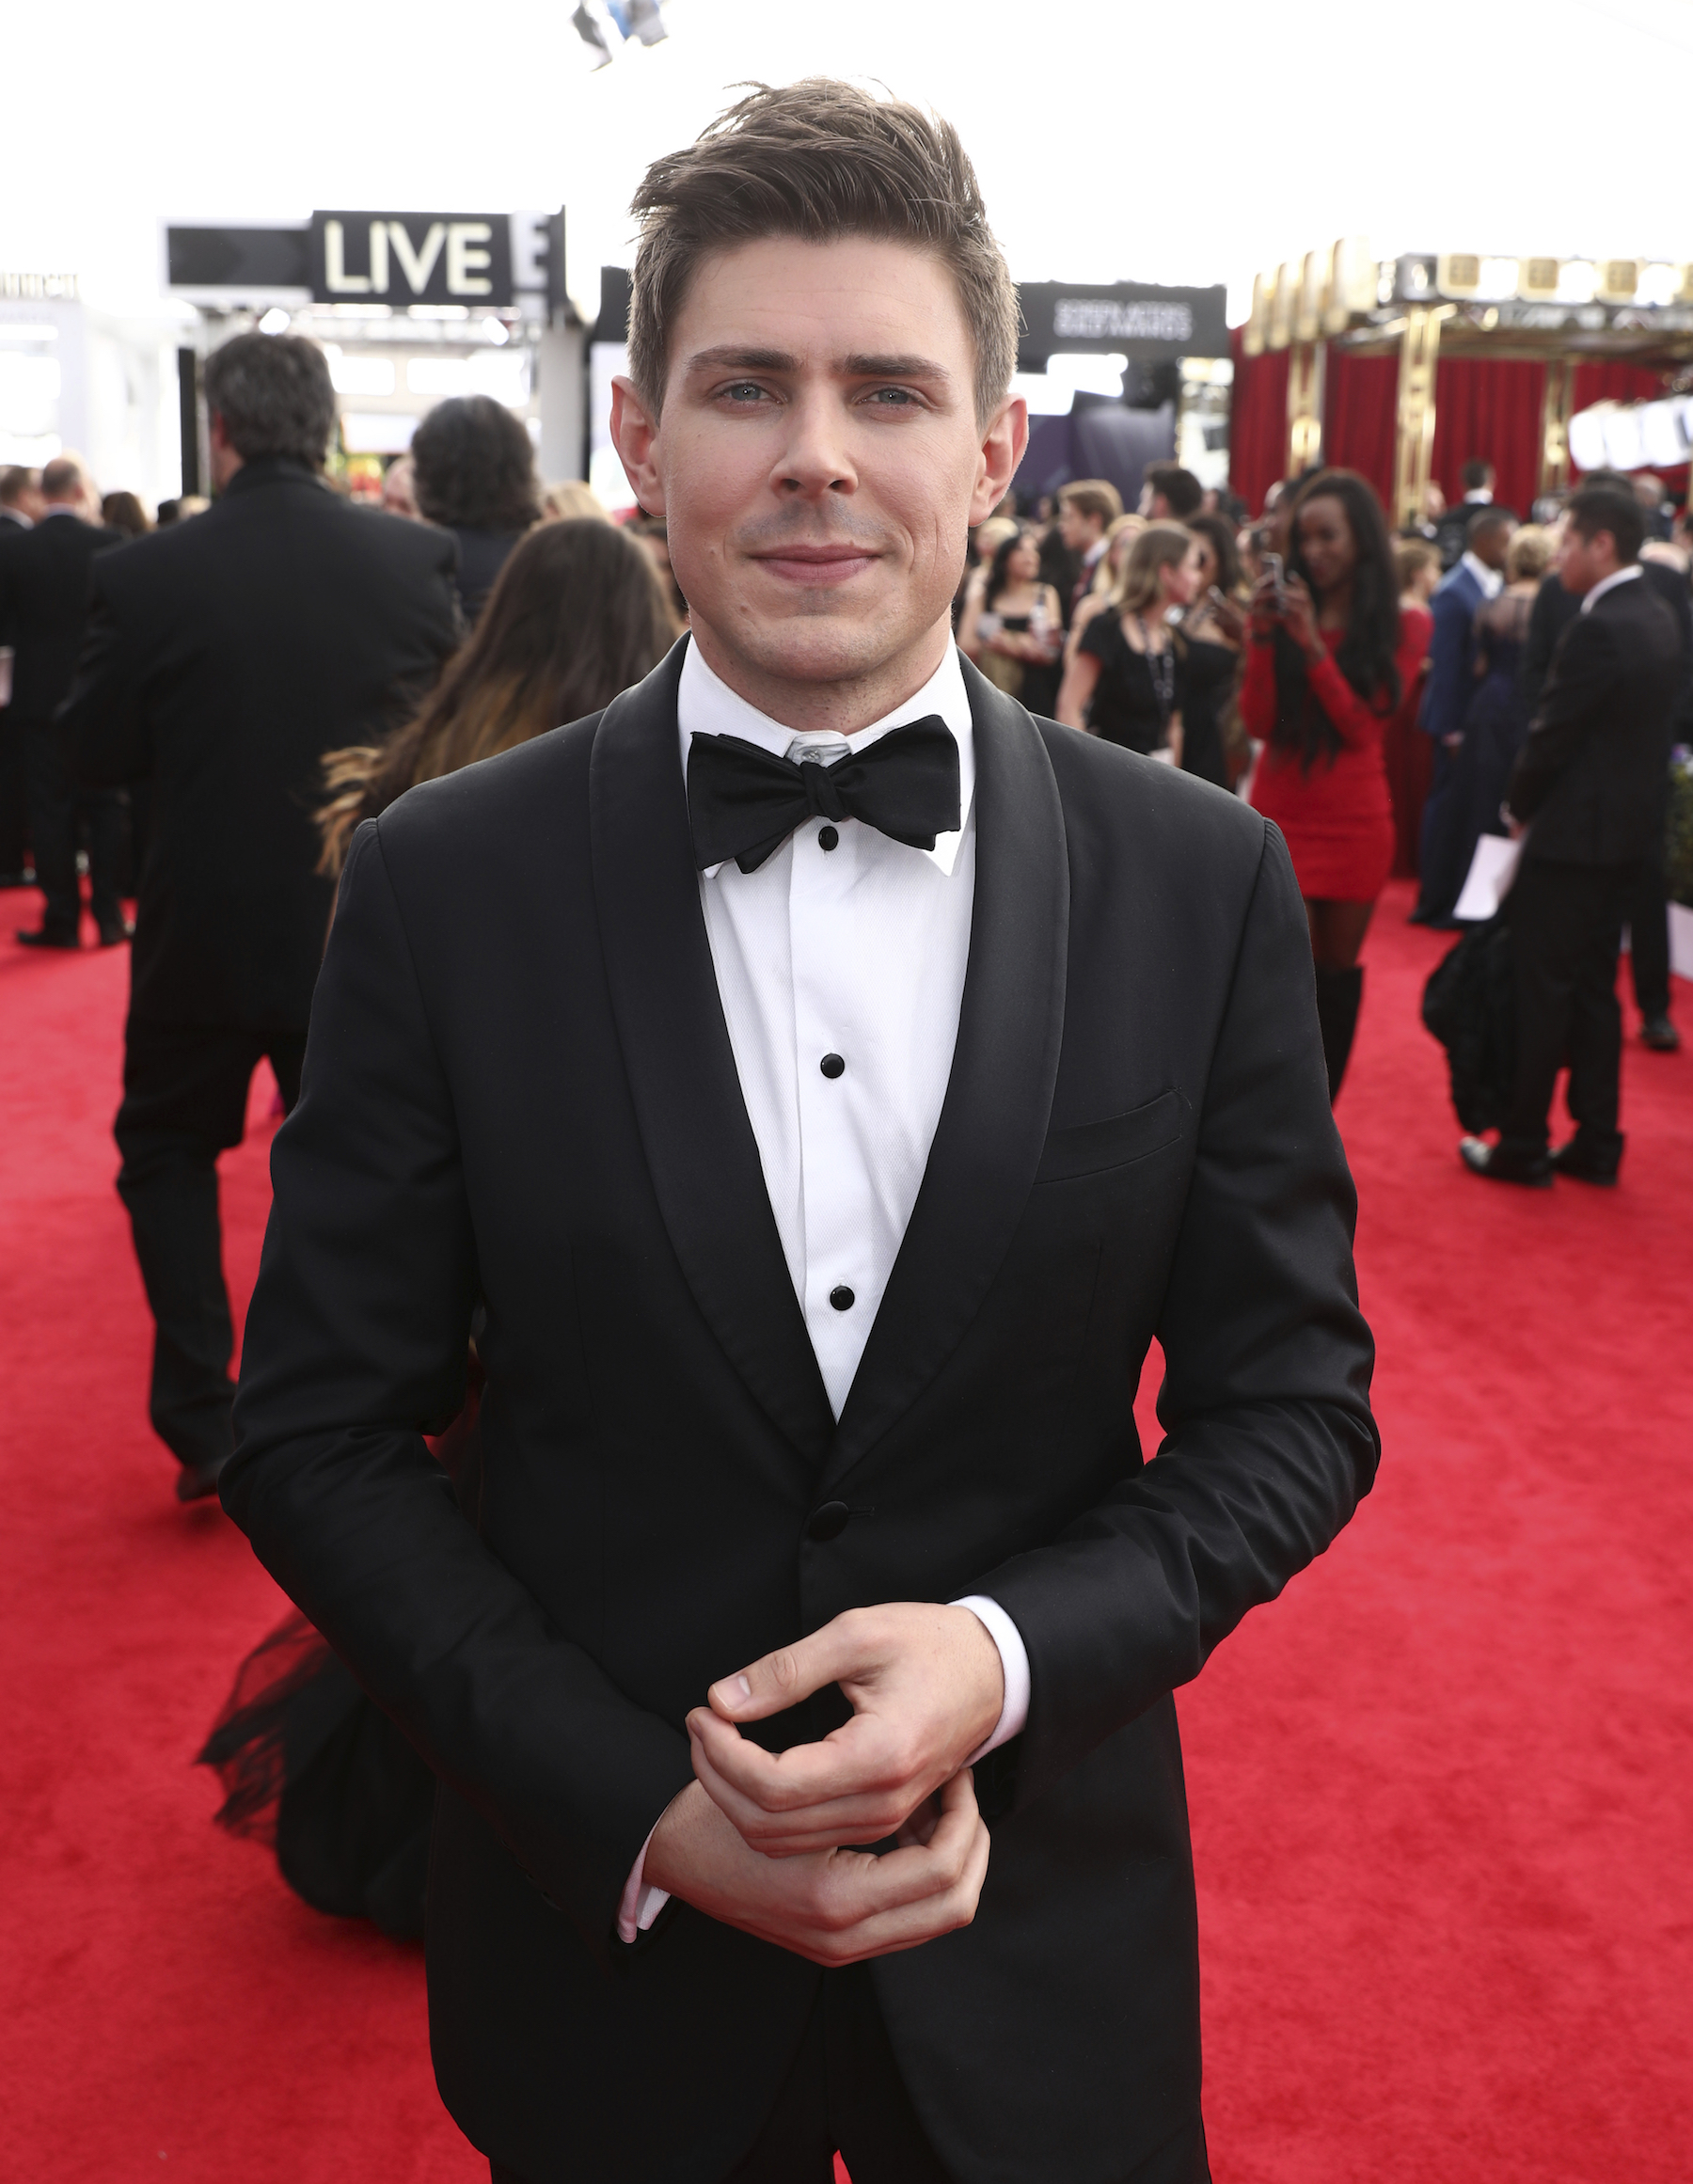 <div class='meta'><div class='origin-logo' data-origin='AP'></div><span class='caption-text' data-credit='Matt Sayles/Invision/AP'>Chris Lowell arrives at the 24th annual Screen Actors Guild Awards at the Shrine Auditorium & Expo Hall on Sunday, Jan. 21, 2018, in Los Angeles.</span></div>